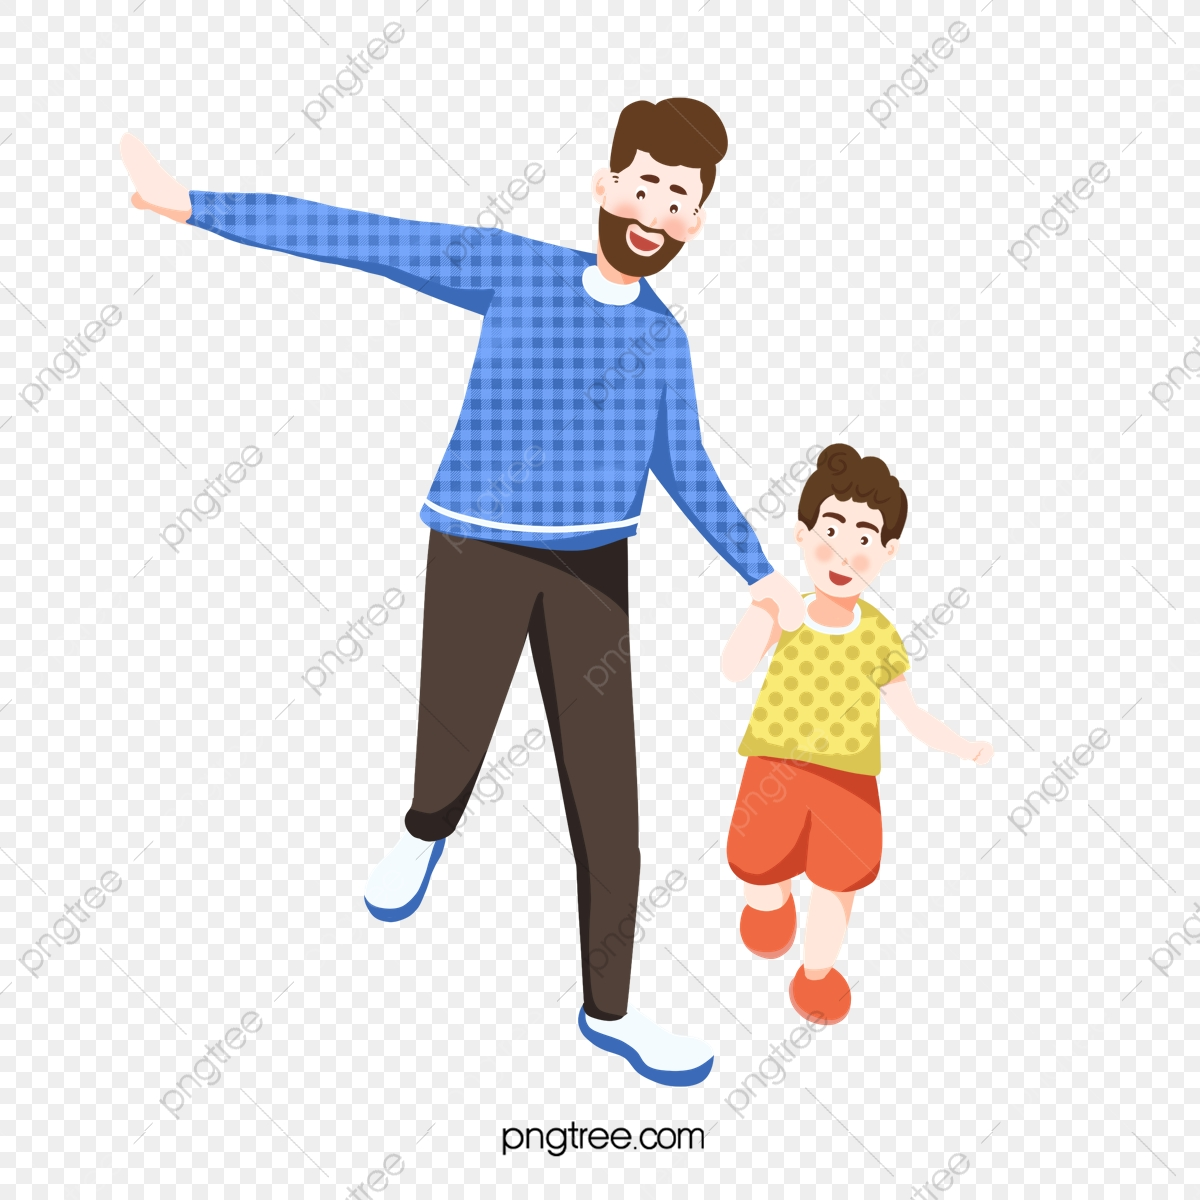 Dad clipart father and son. Walking together png